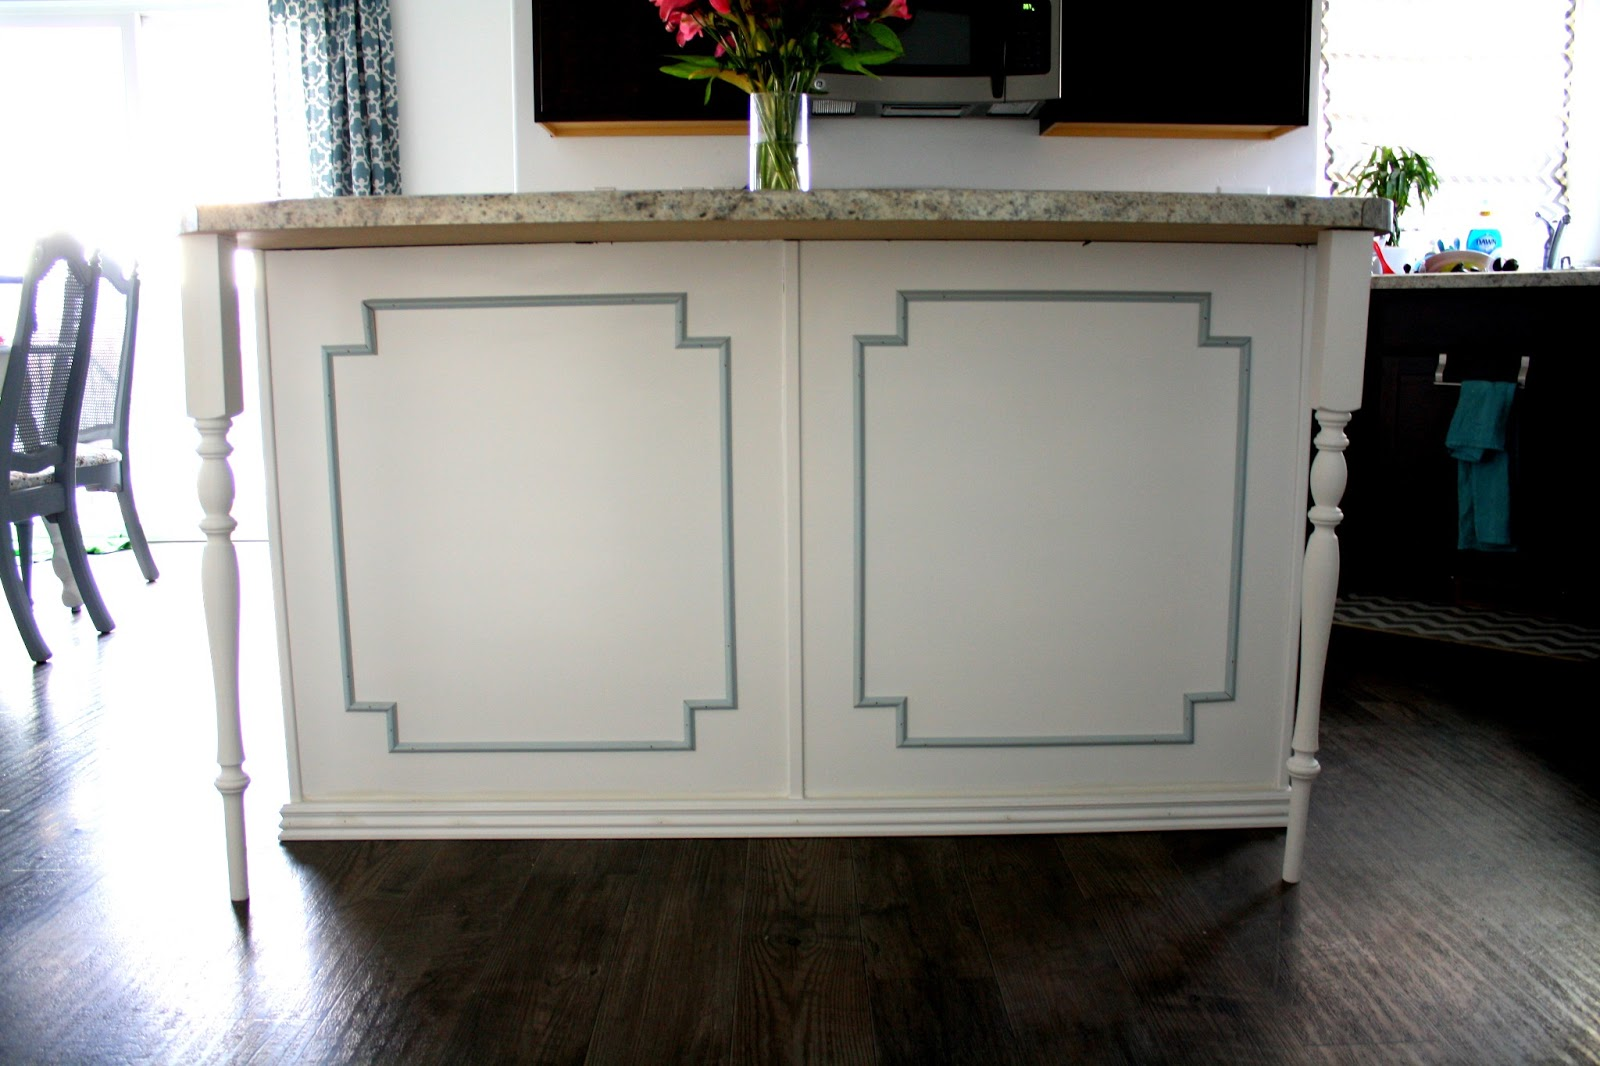 wainscoting kitchen island www galleryhip com the similiar wainscoting kitchen island keywords